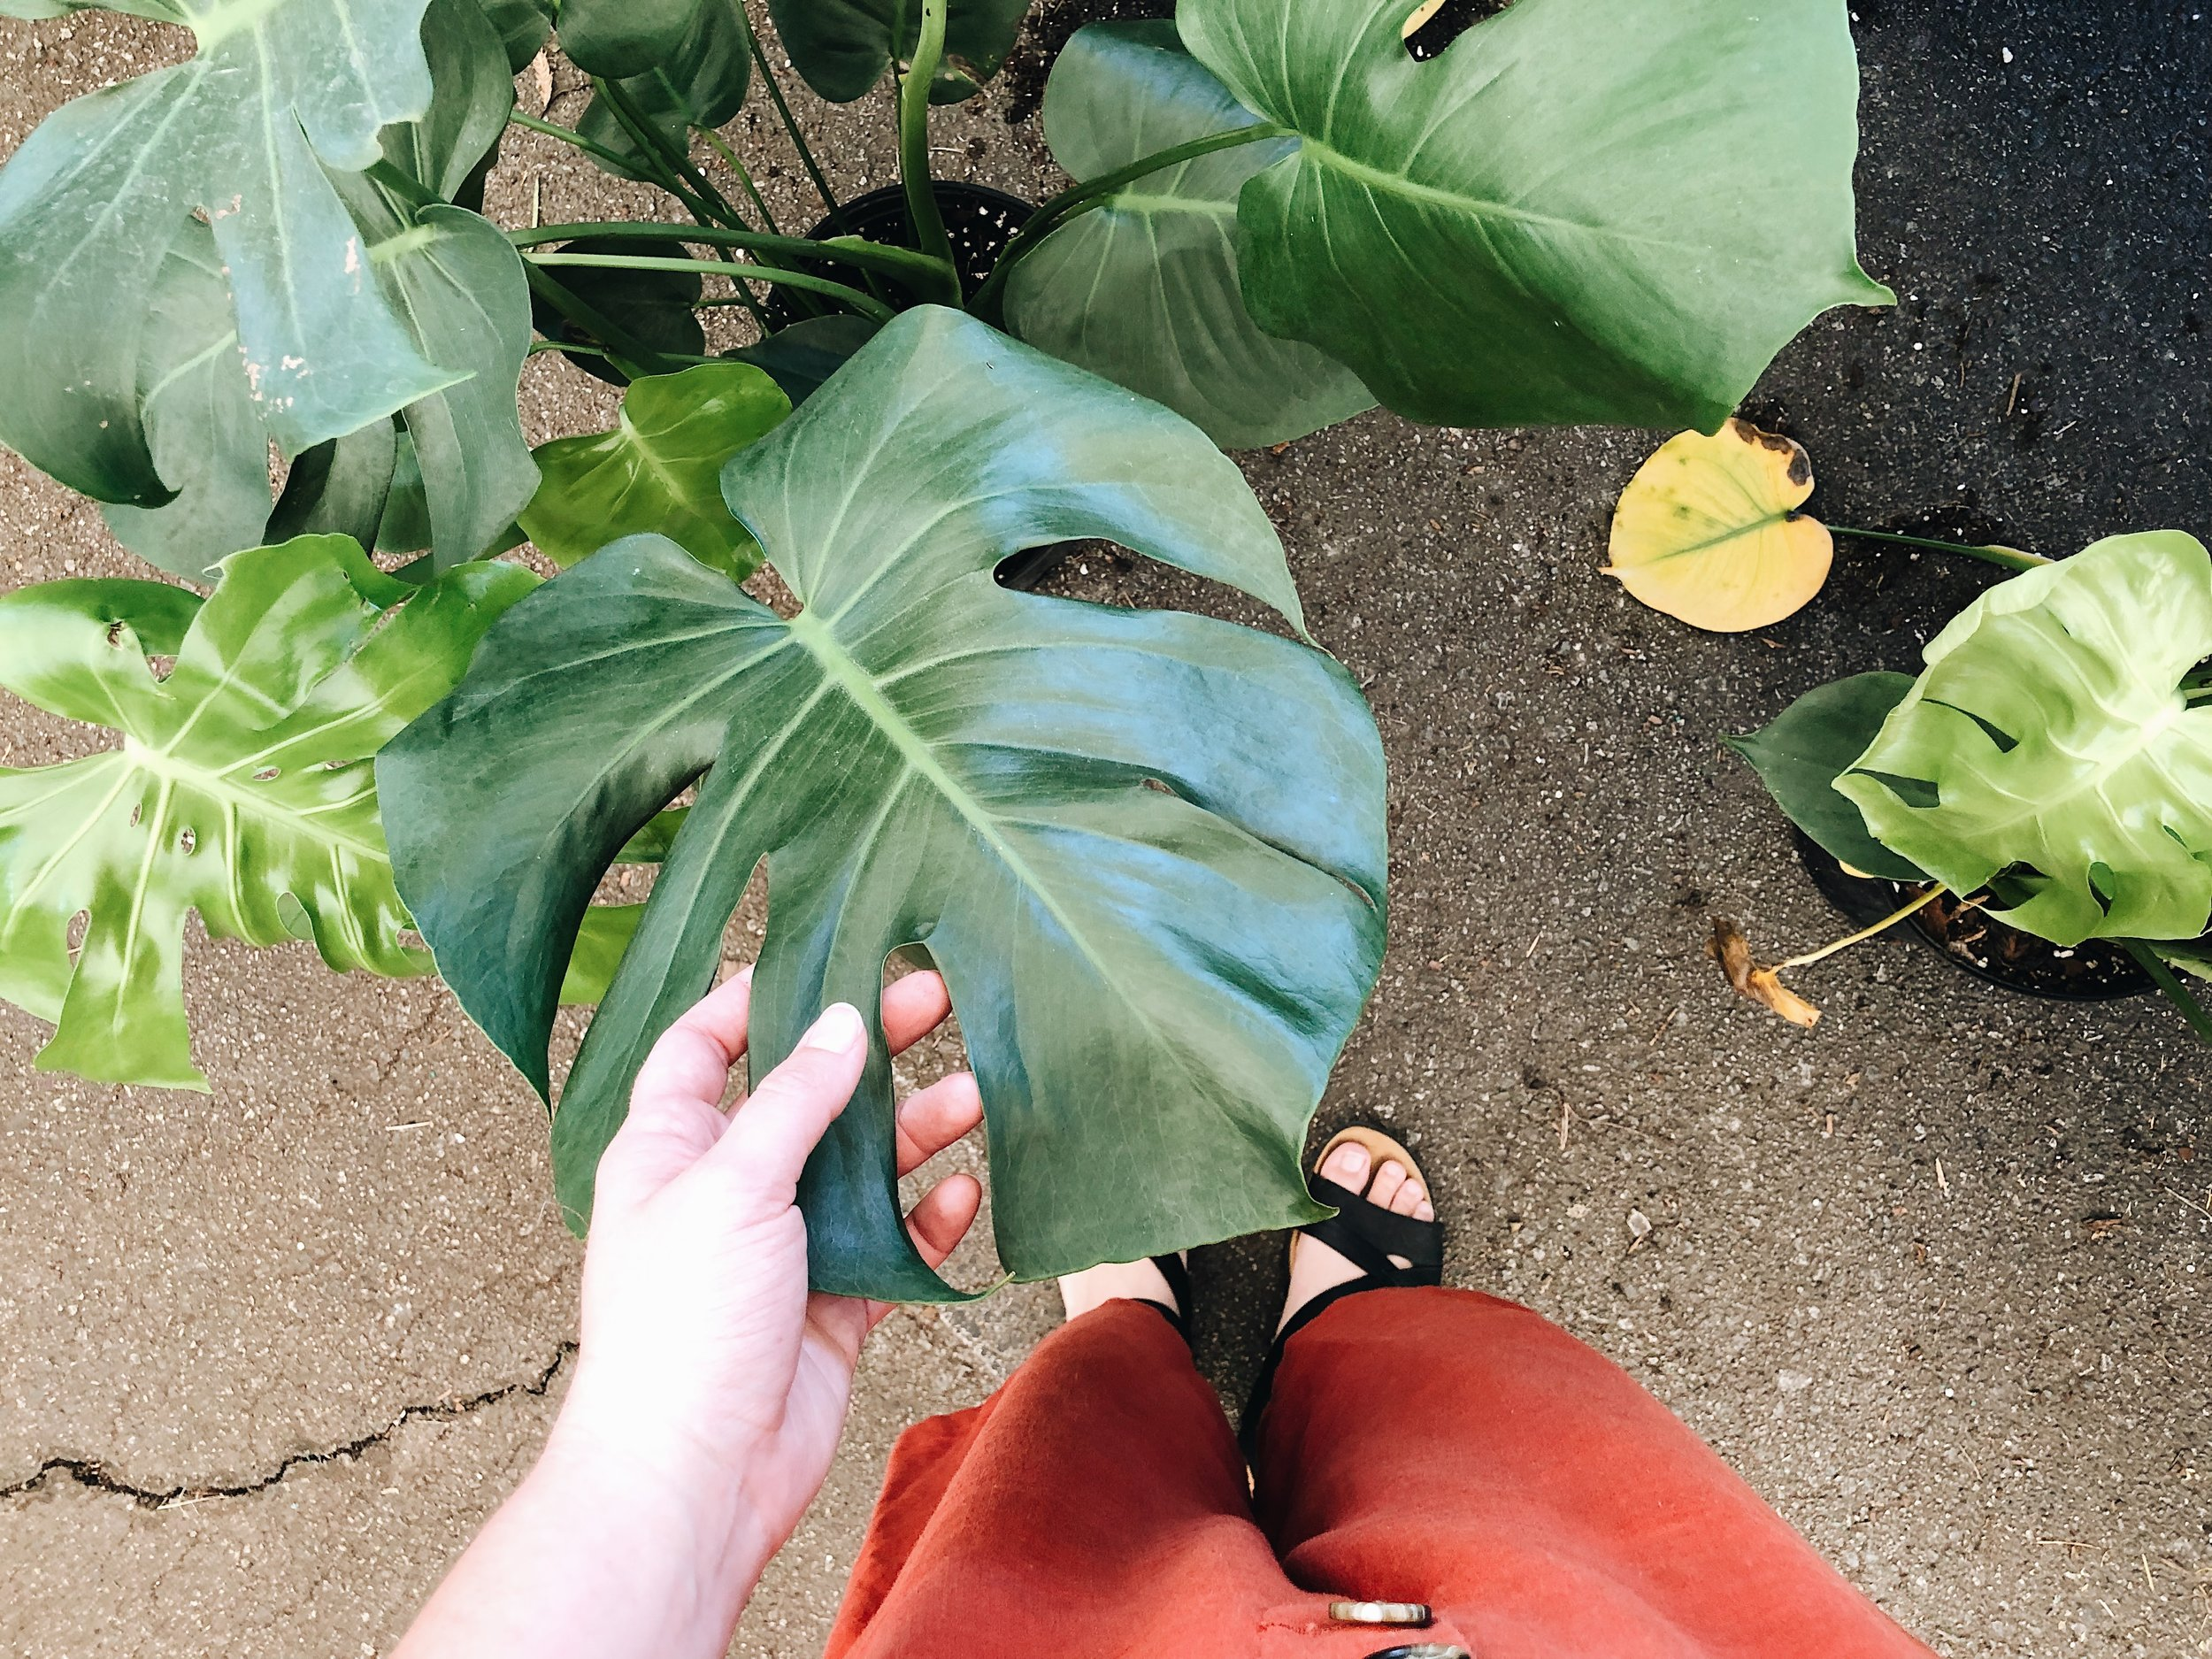 green philodendron leaves